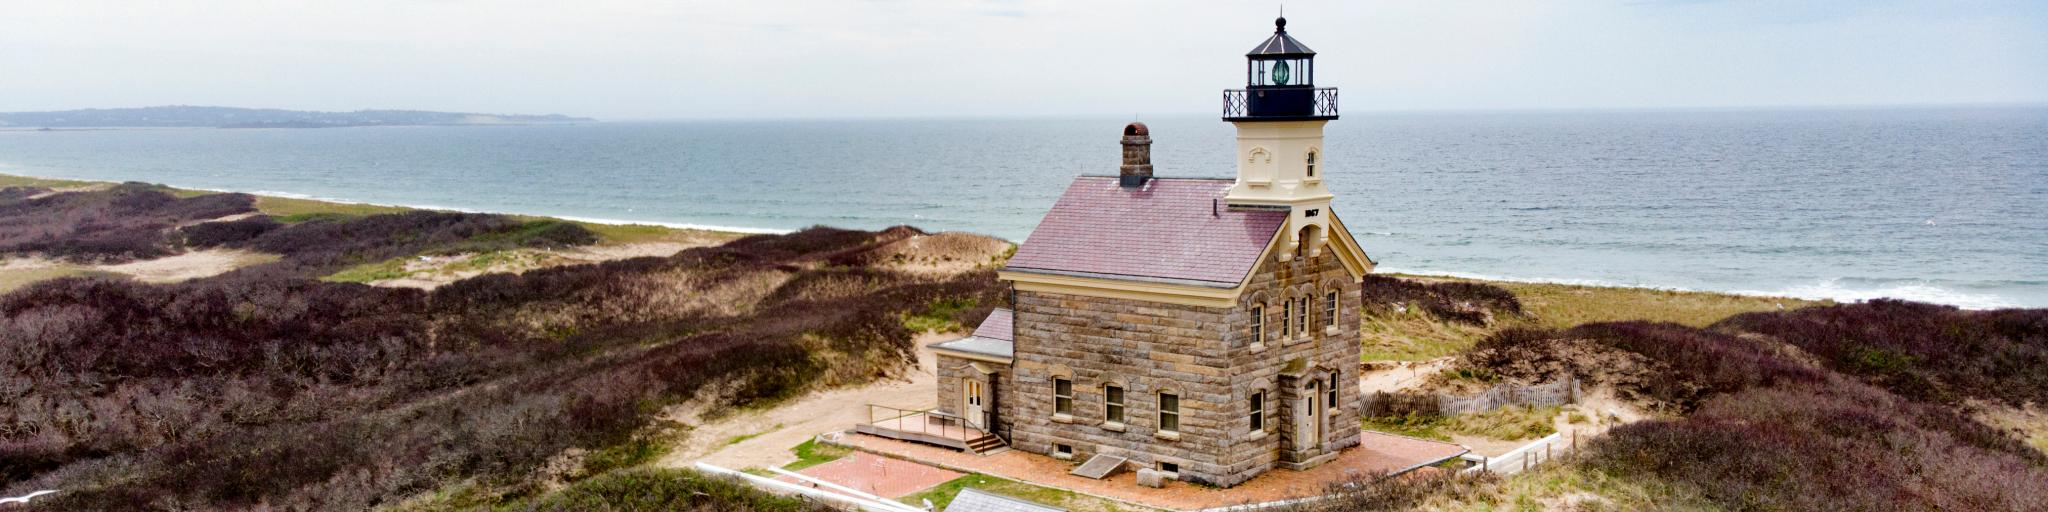 Classic lighthouse building looking out to sea on Block Island, Rhode Island.